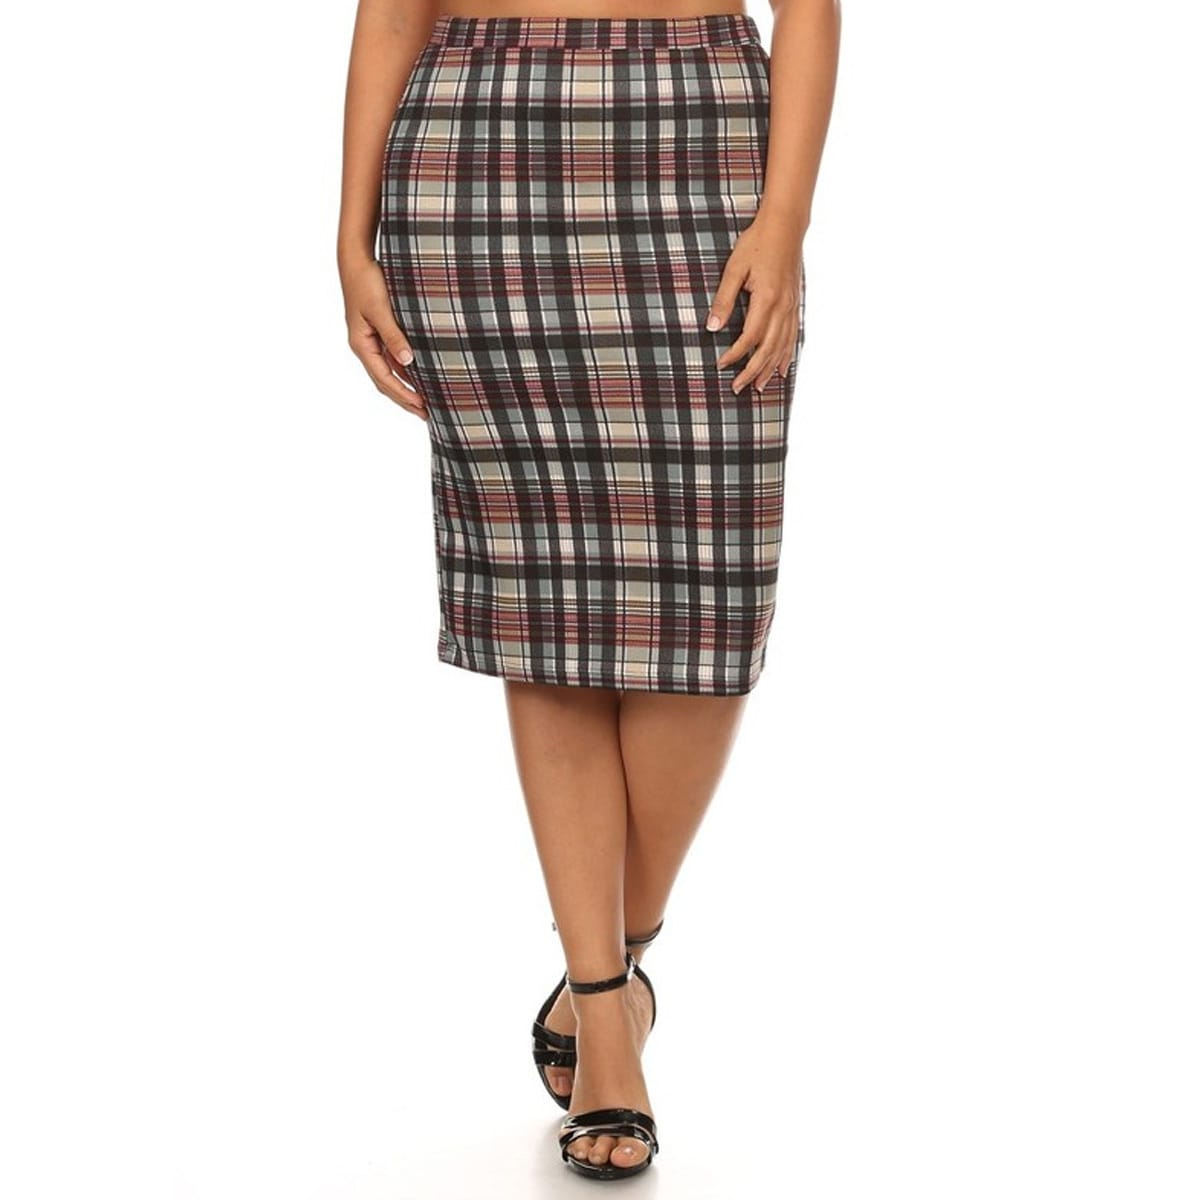 Women's Multicolor Polyester Plus-size Plaid Pencil Skirt...